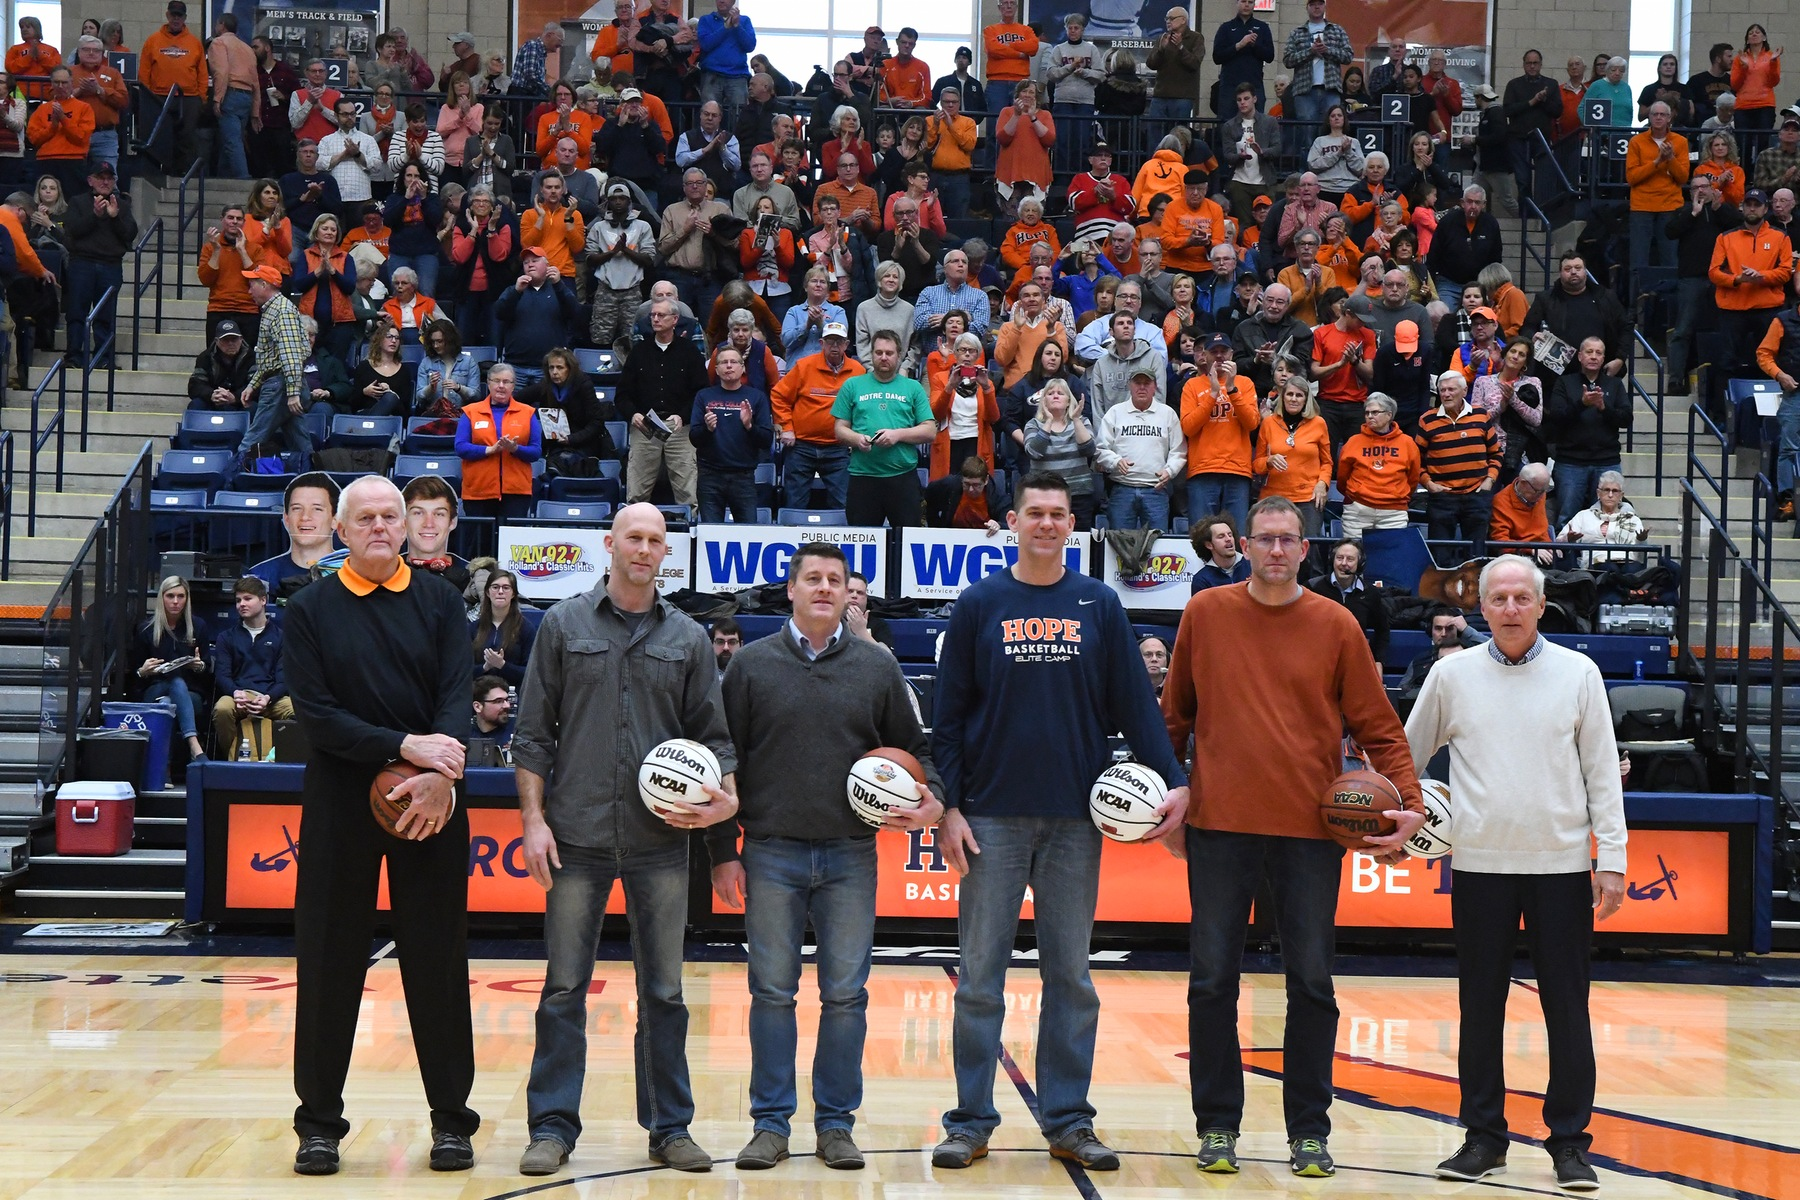 Hope and Calvin men's basketball legends pose together for a picture at halfcourt